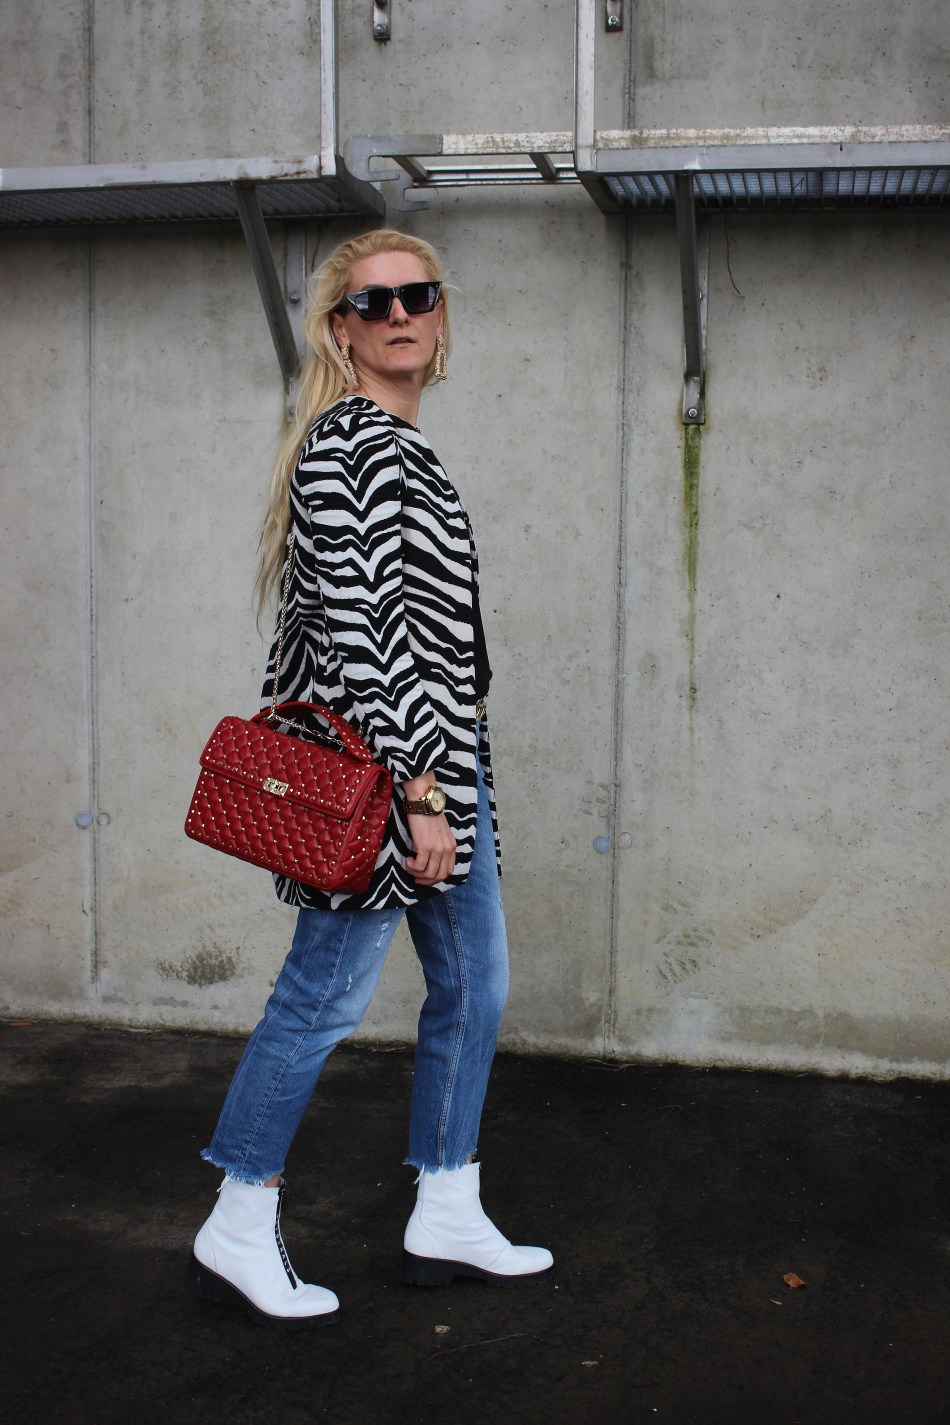 Zebra-Trend-Muster-2020-Valentino-Rockstud-Bag-CCC-Shoes-and-Bags-Boots-weiße Boots-carrieslifestyle-Blogger-Tamara-Prutsch